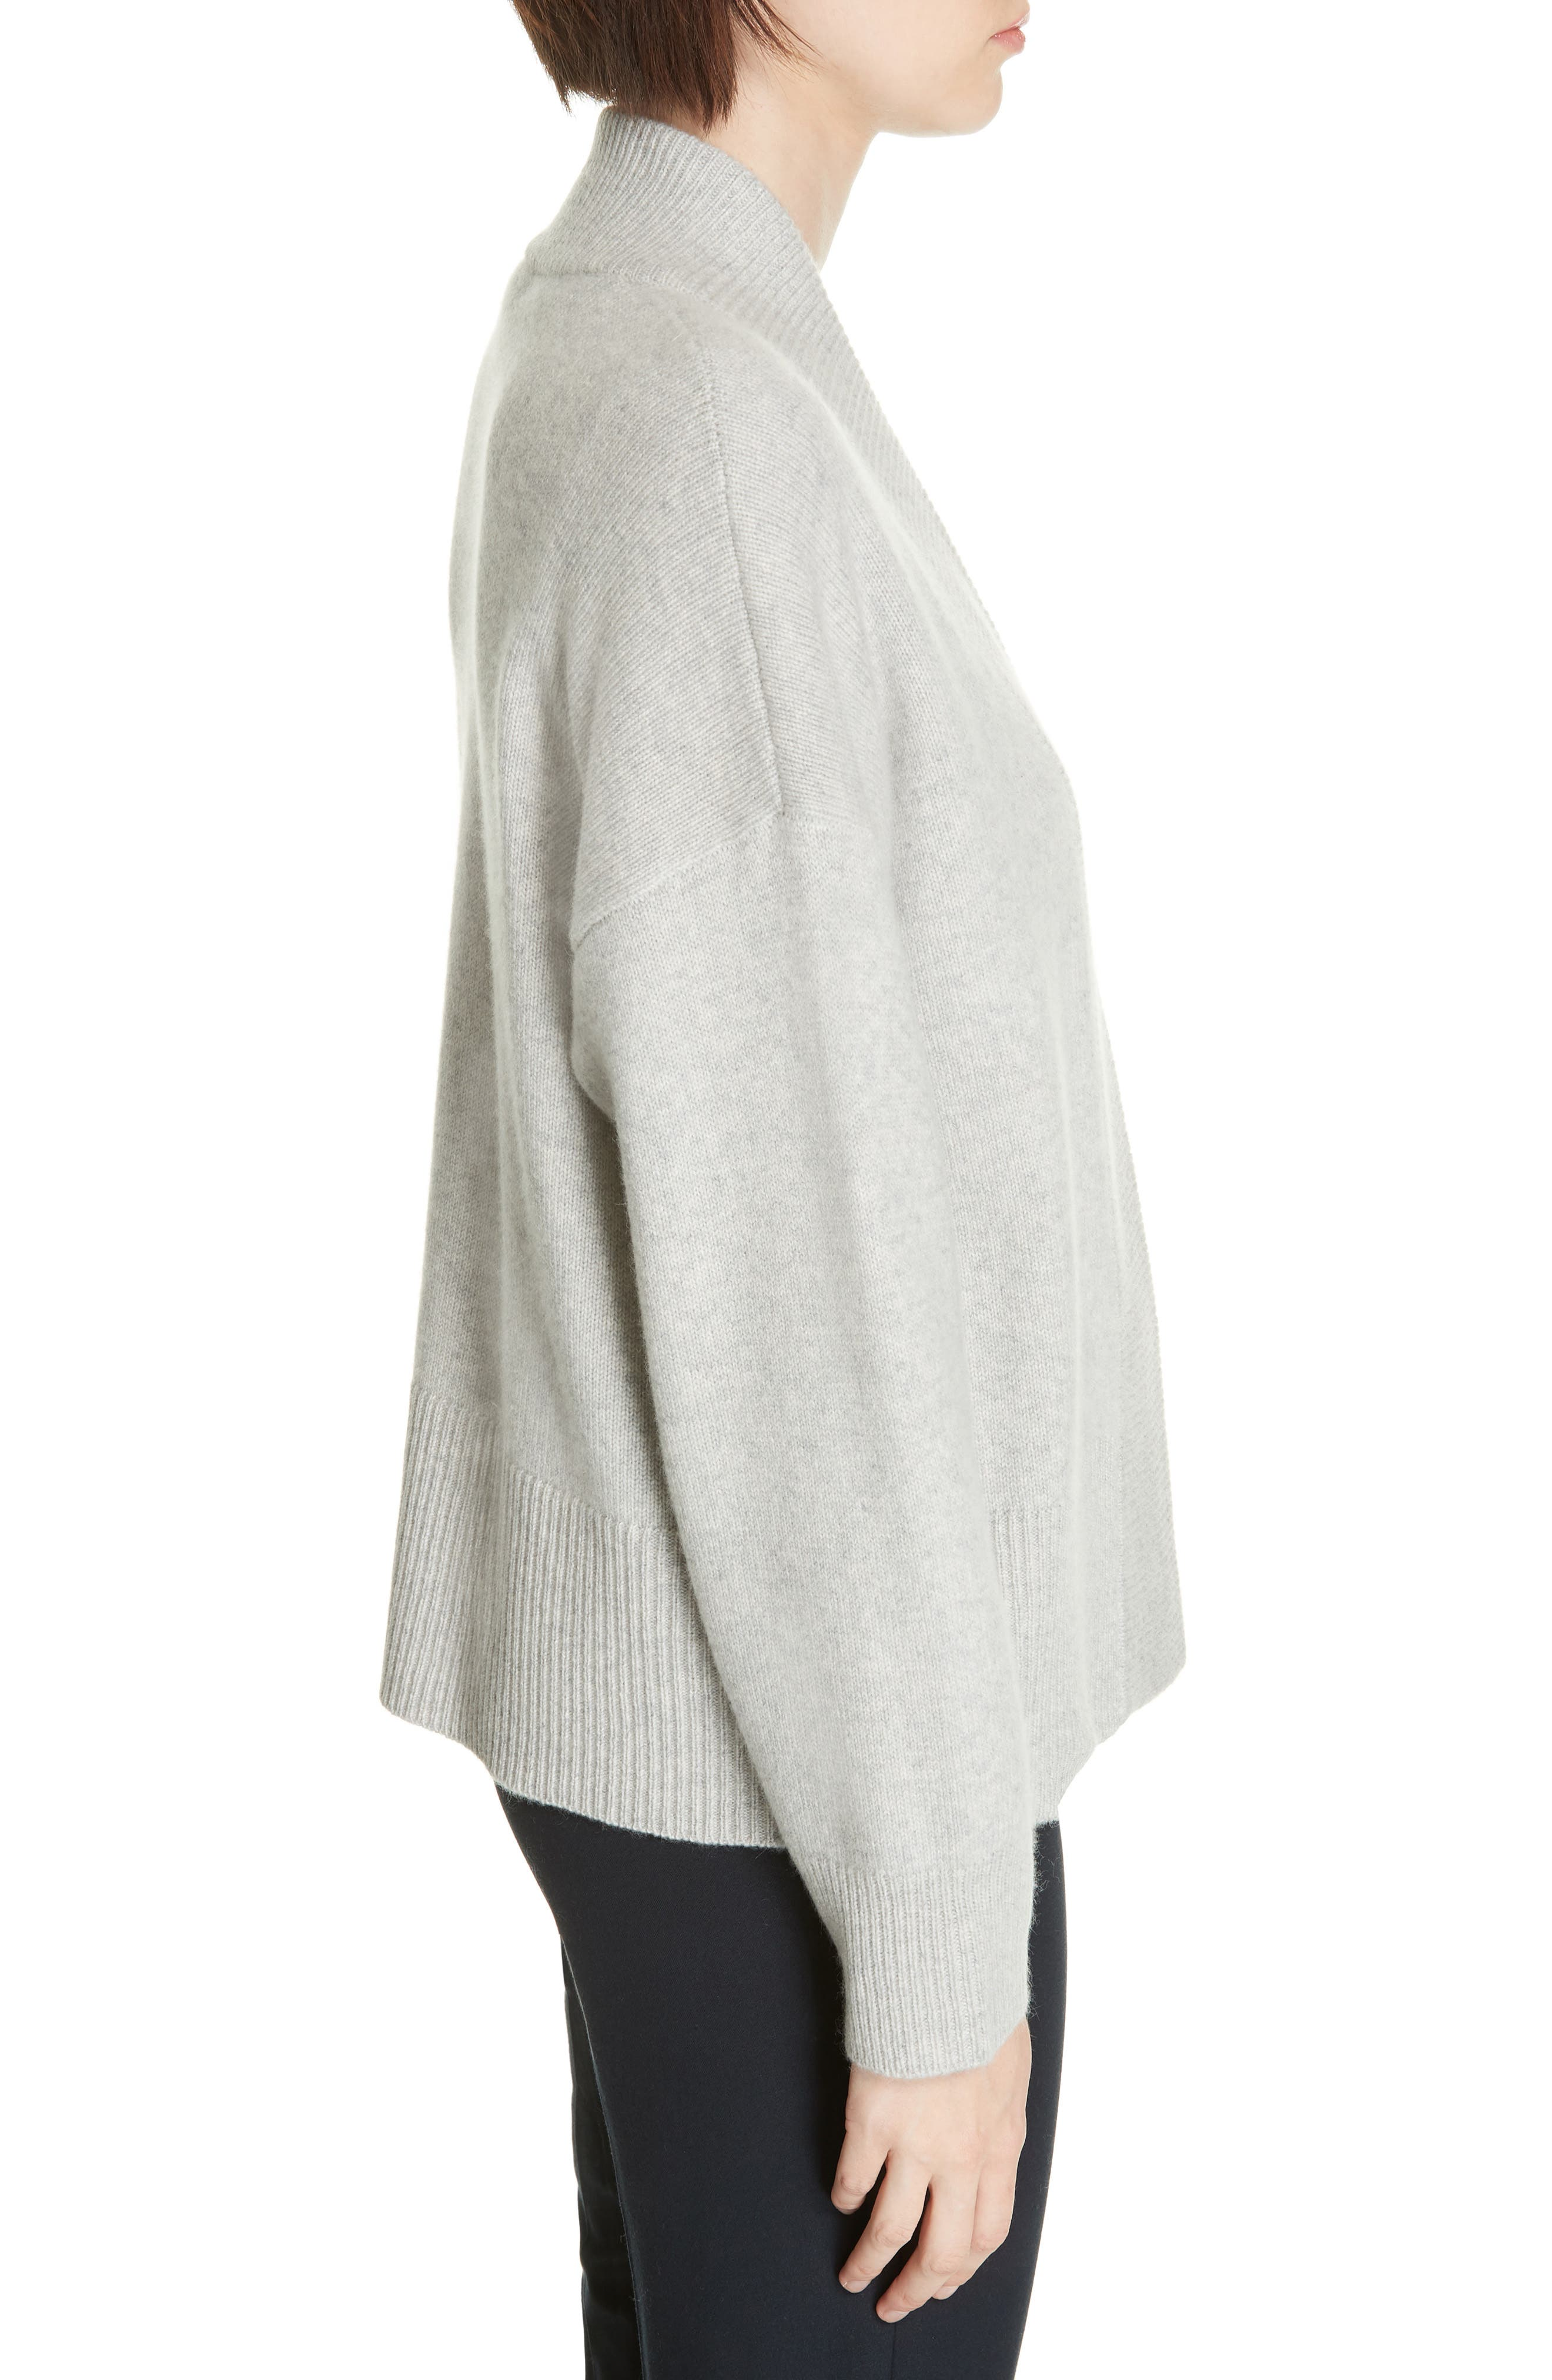 NORDSTROM SIGNATURE, Cashmere Blend Cardigan, Alternate thumbnail 3, color, GREY CLAY HEATHER